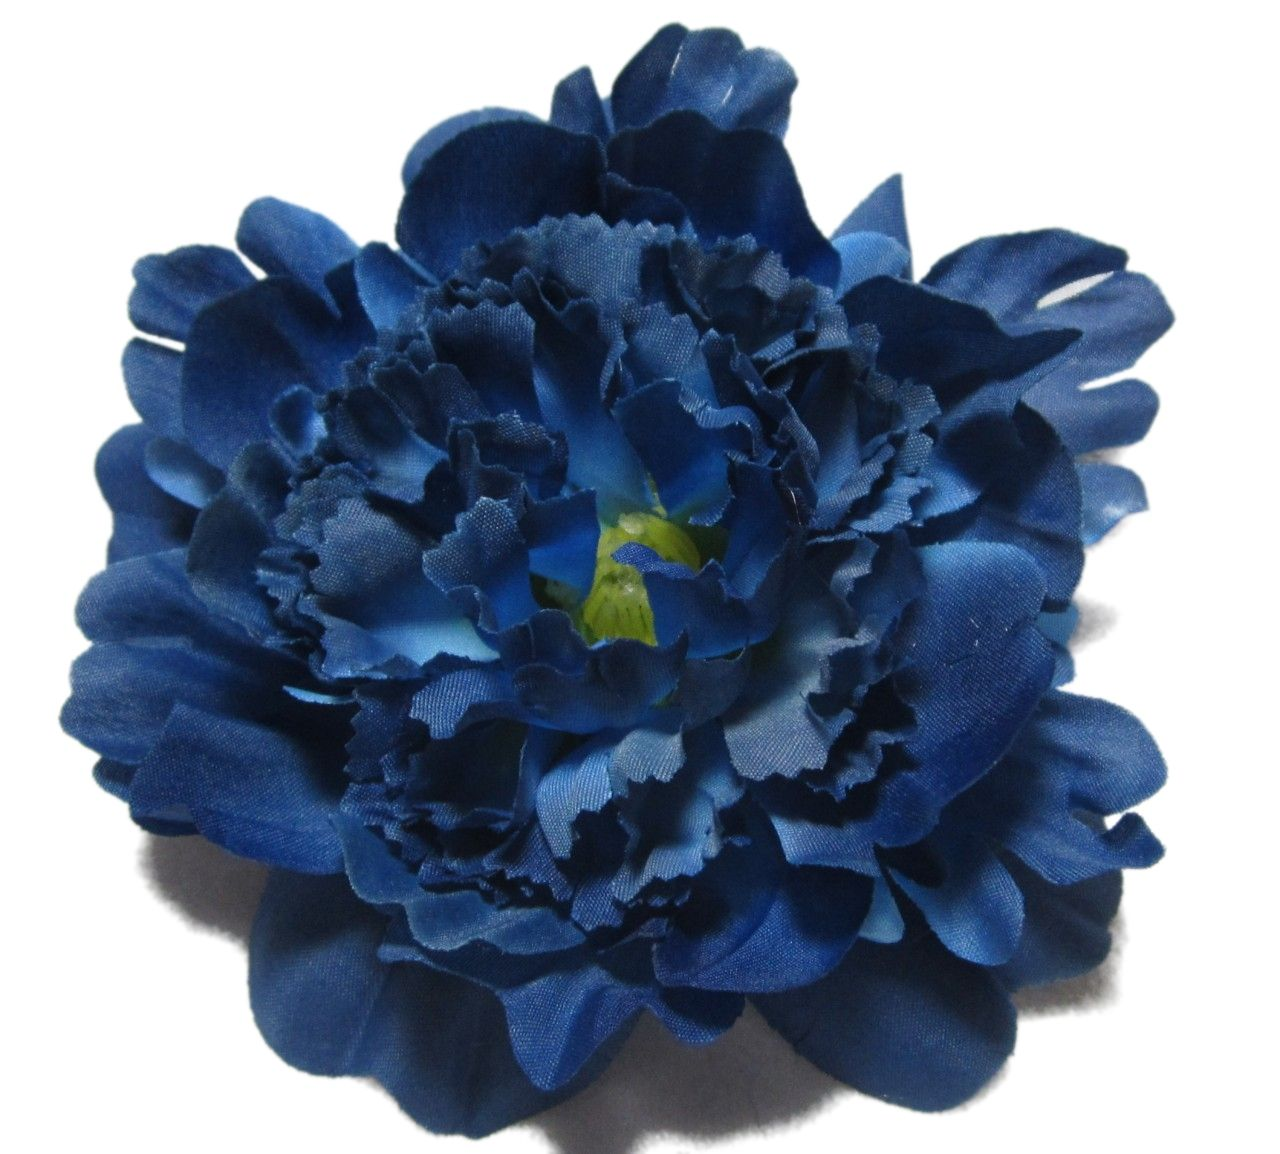 Hairflowers blue peony flower hair clip and pin 599 http hairflowers blue peony flower hair clip and pin 599 http izmirmasajfo Image collections